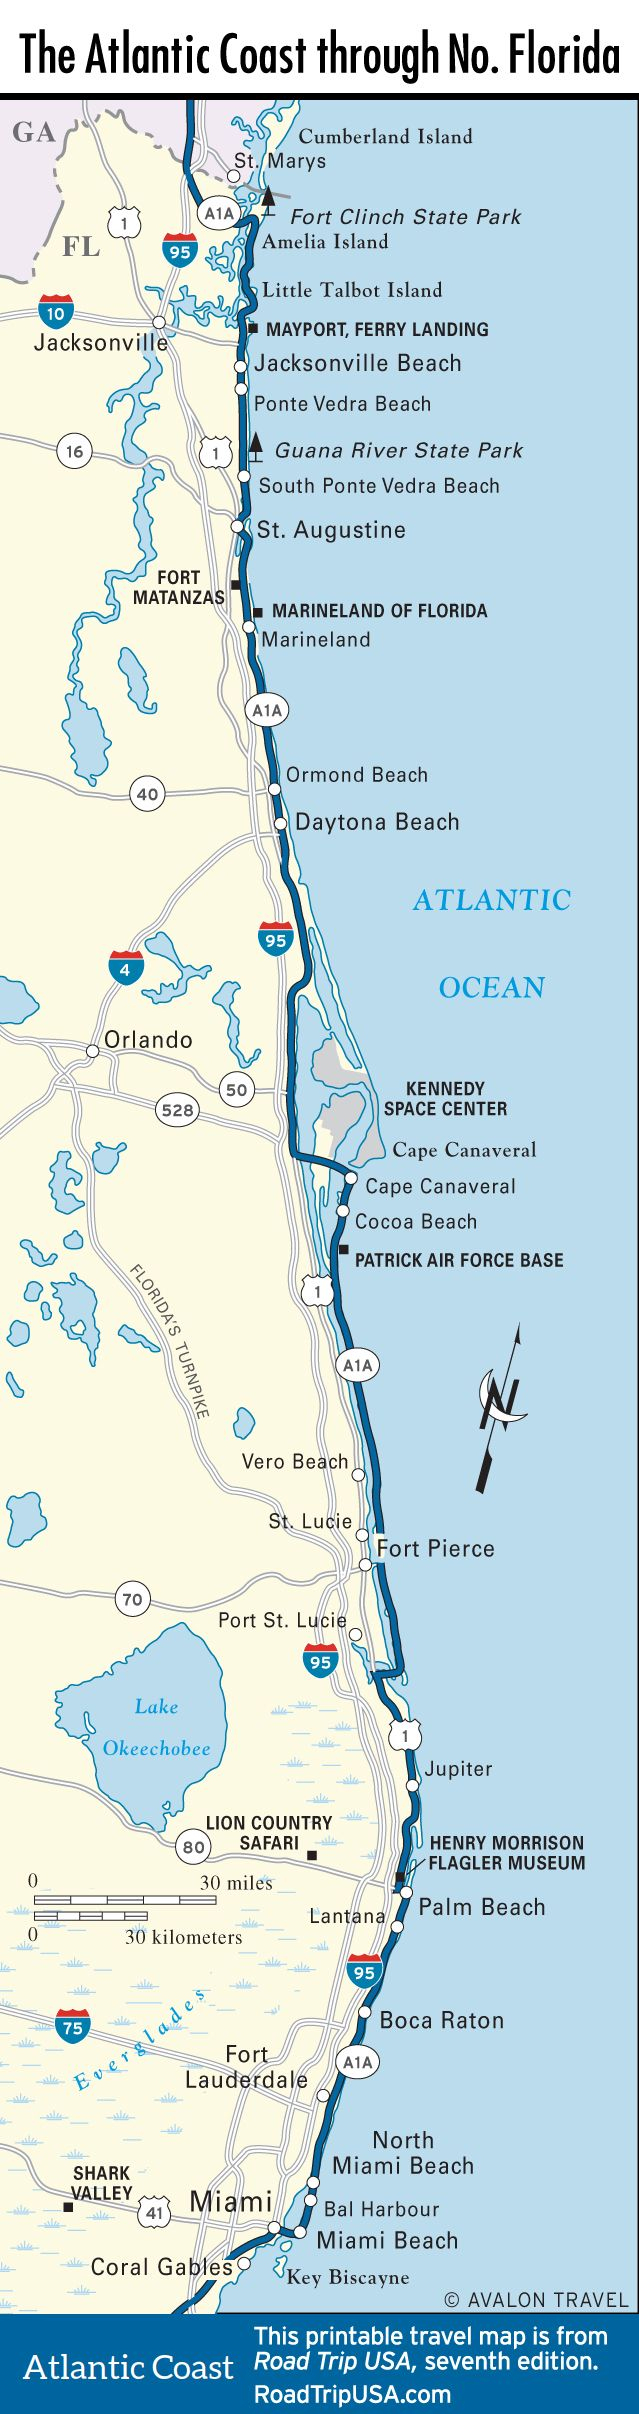 Alligator Point Florida Map - Alligator Point Florida Map